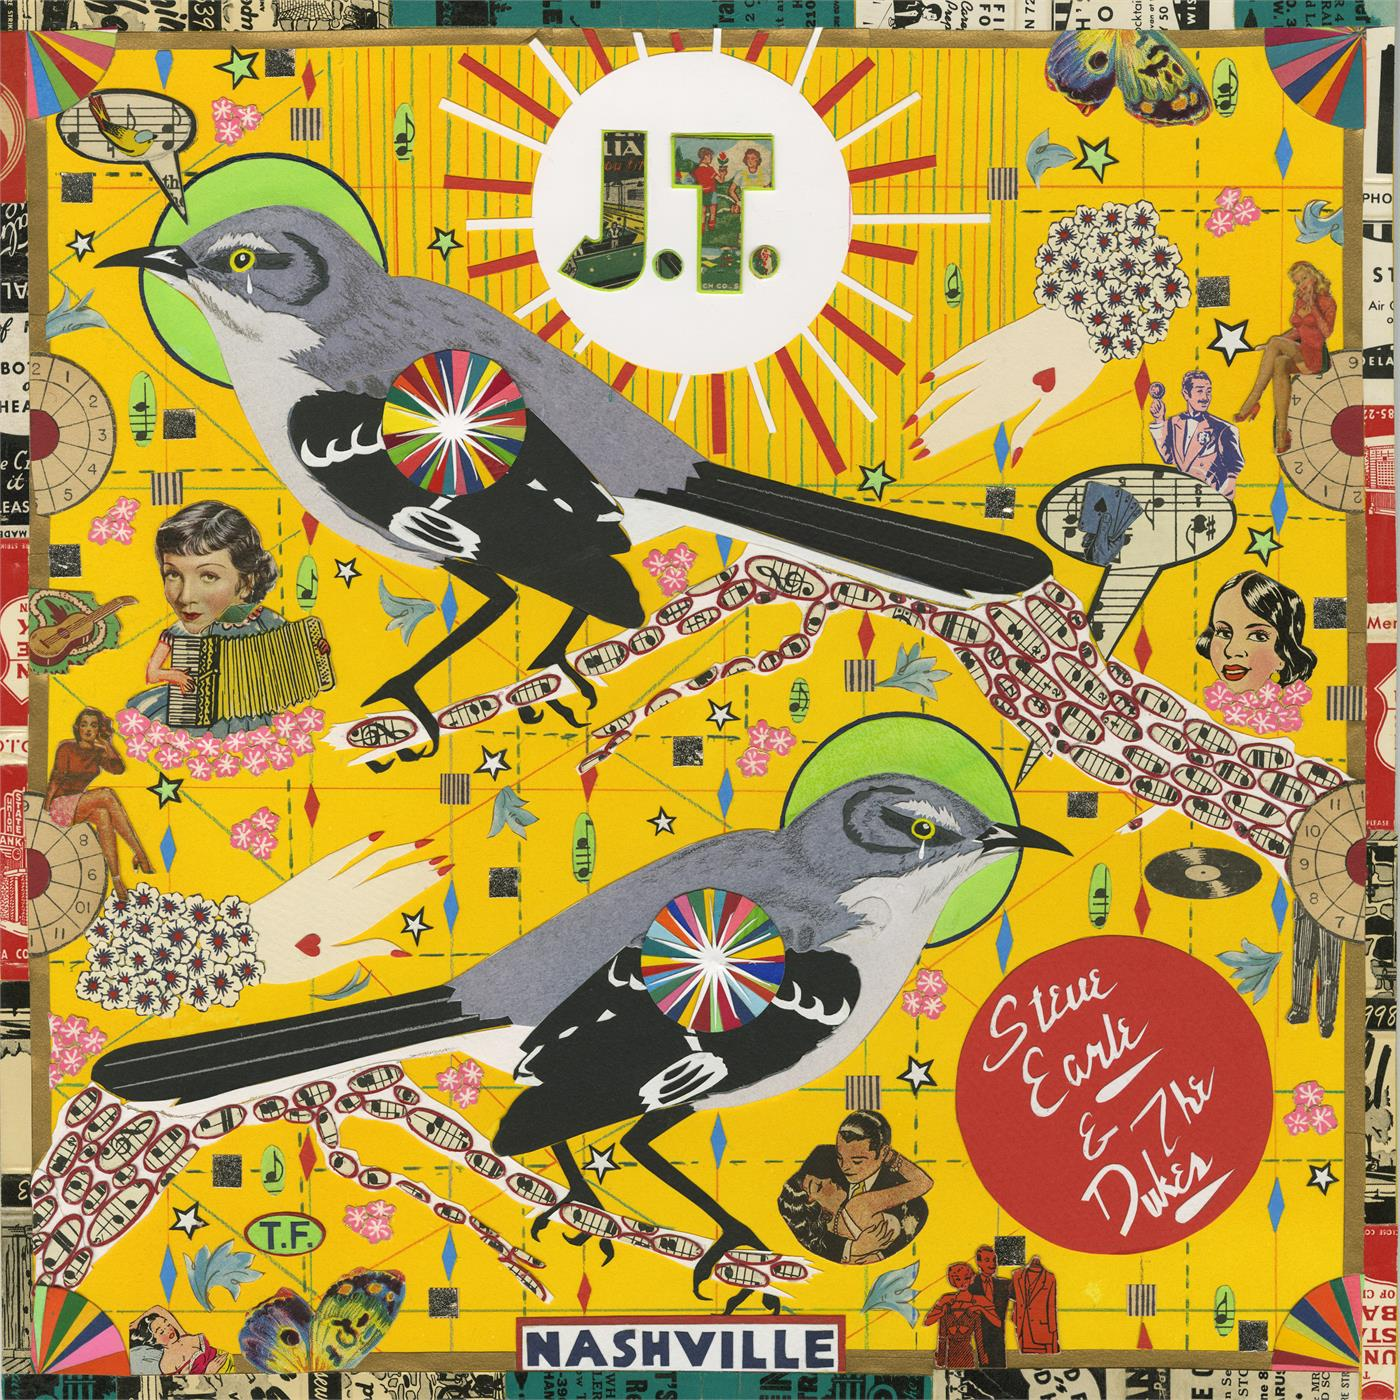 Steve Earle & The Dukes - J.T. [LTD LP] (translucent red w/ black swirls Nordic edition)